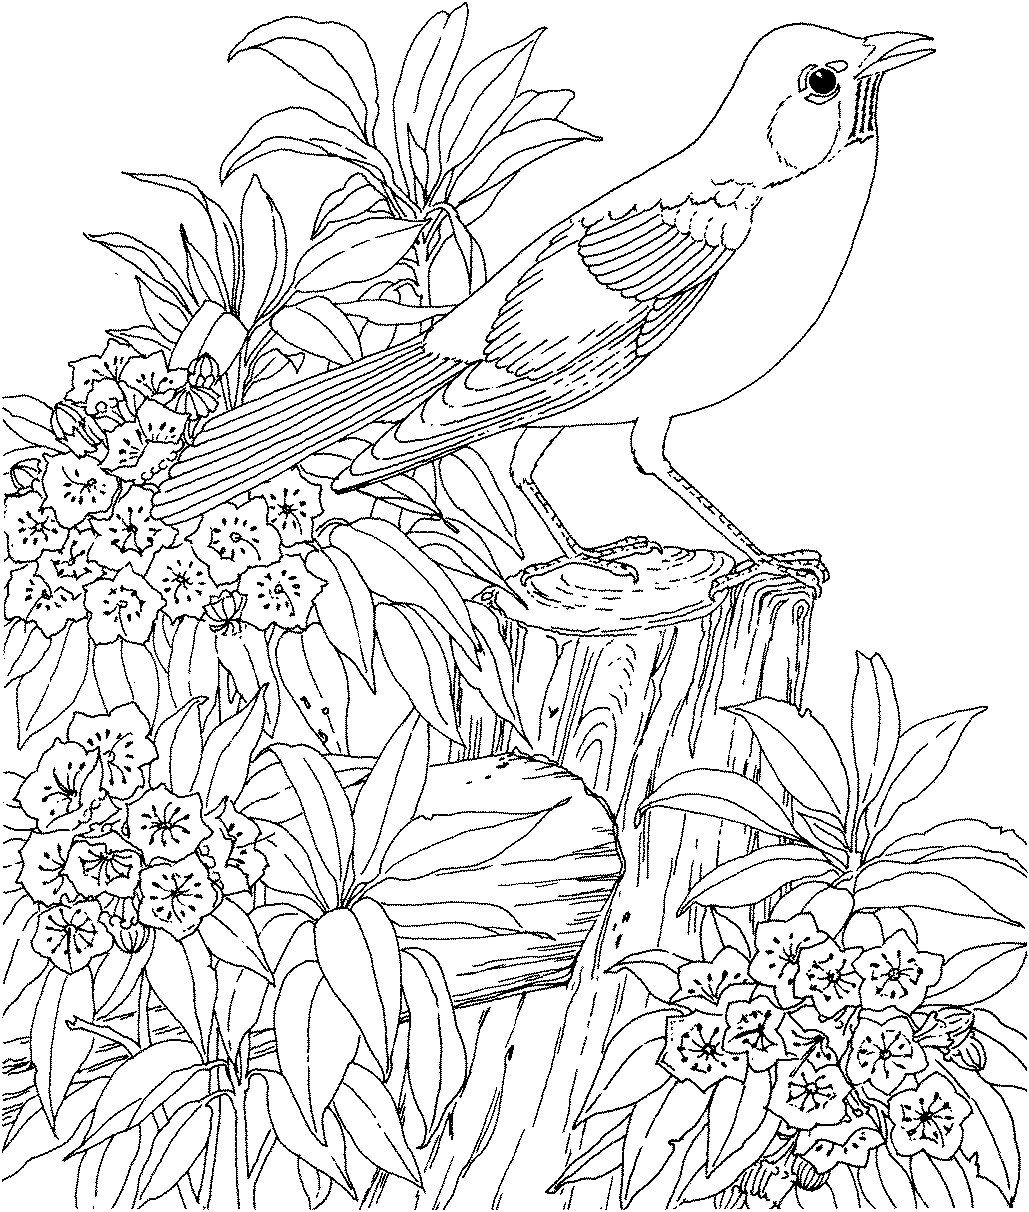 Colouring Page Birds Bird Coloring Pages Garden Coloring Pages Animal Coloring Pages